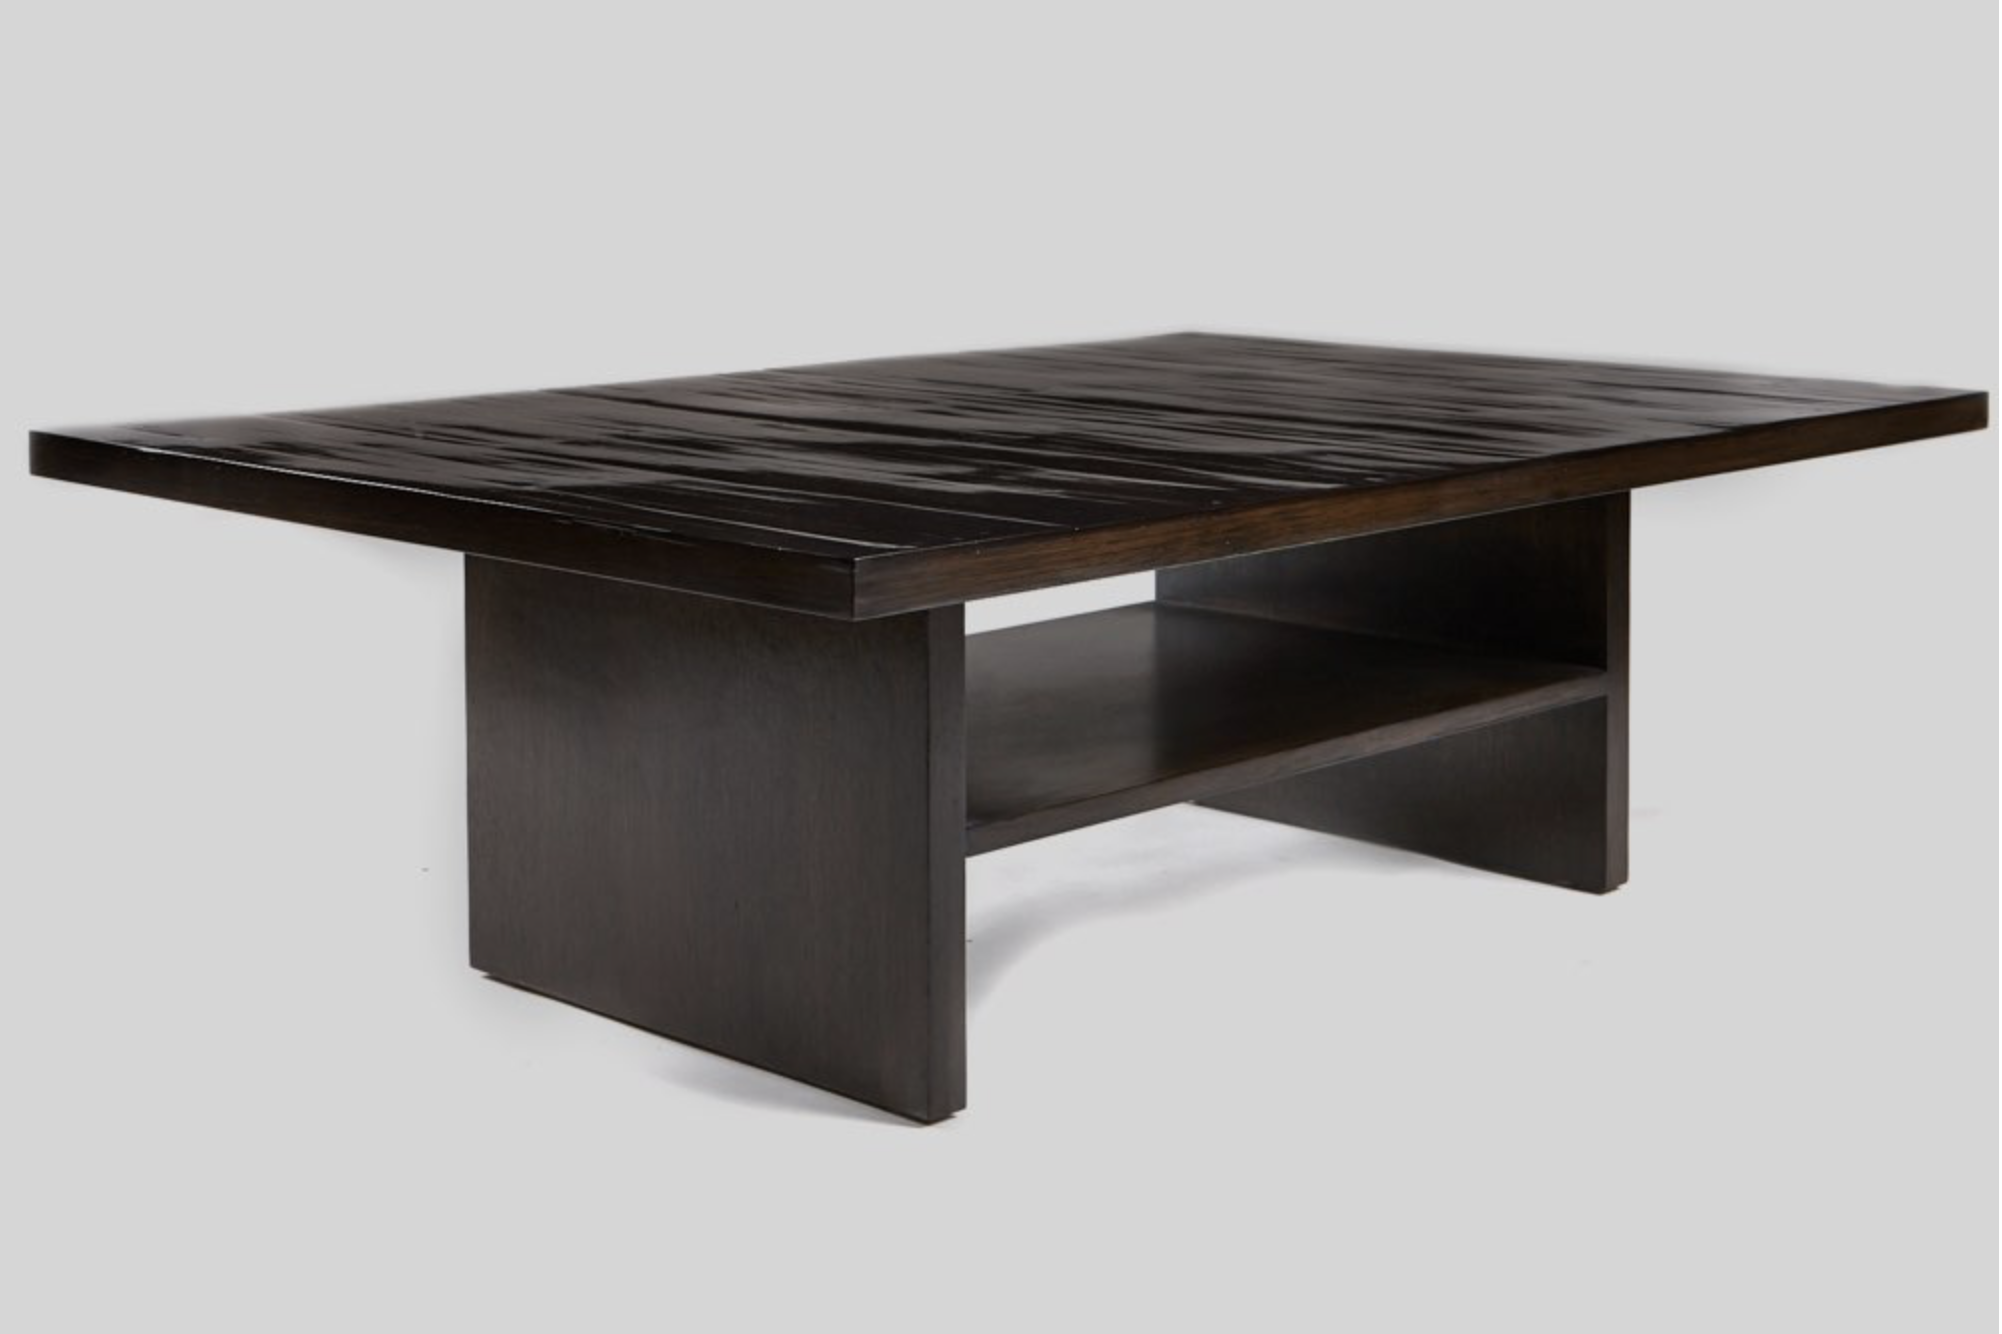 Aguirre Design - Pine Coffee Table - Bamboo and Oak